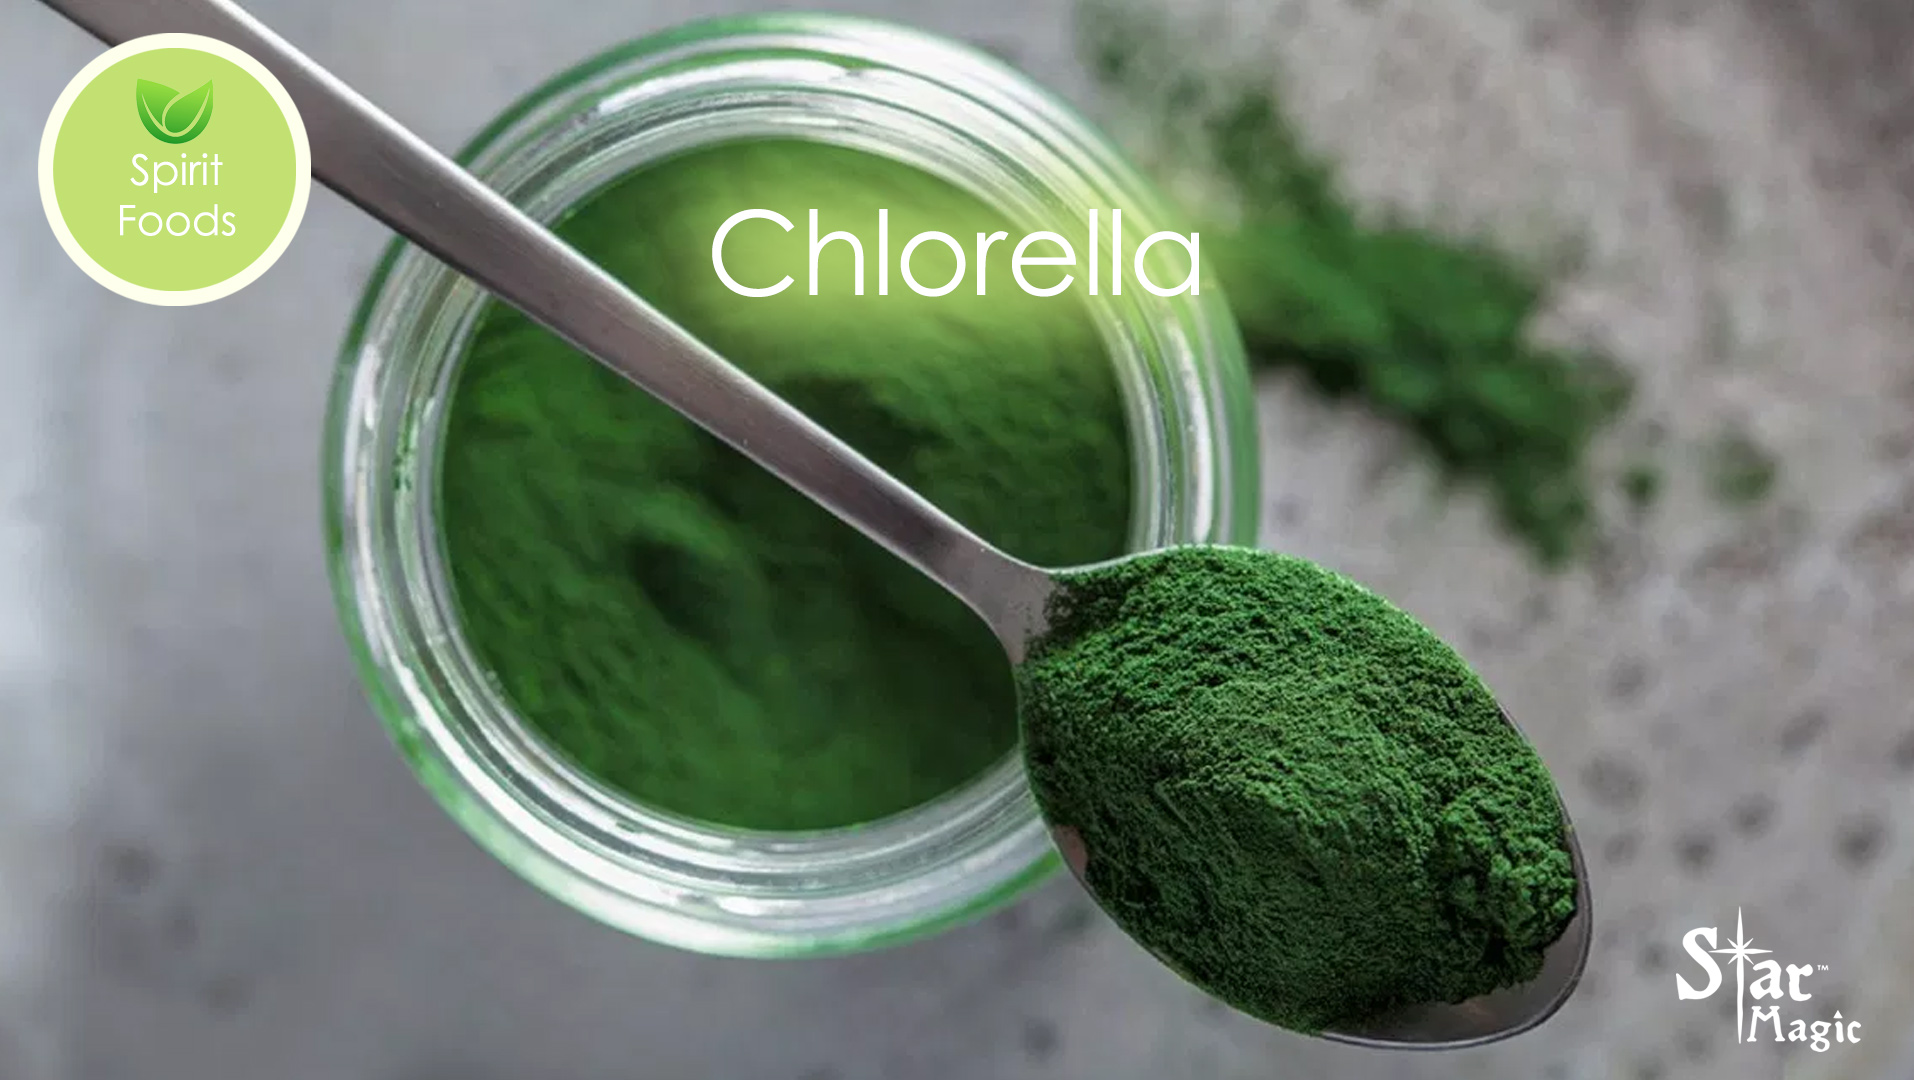 Spirit Food – Chlorella